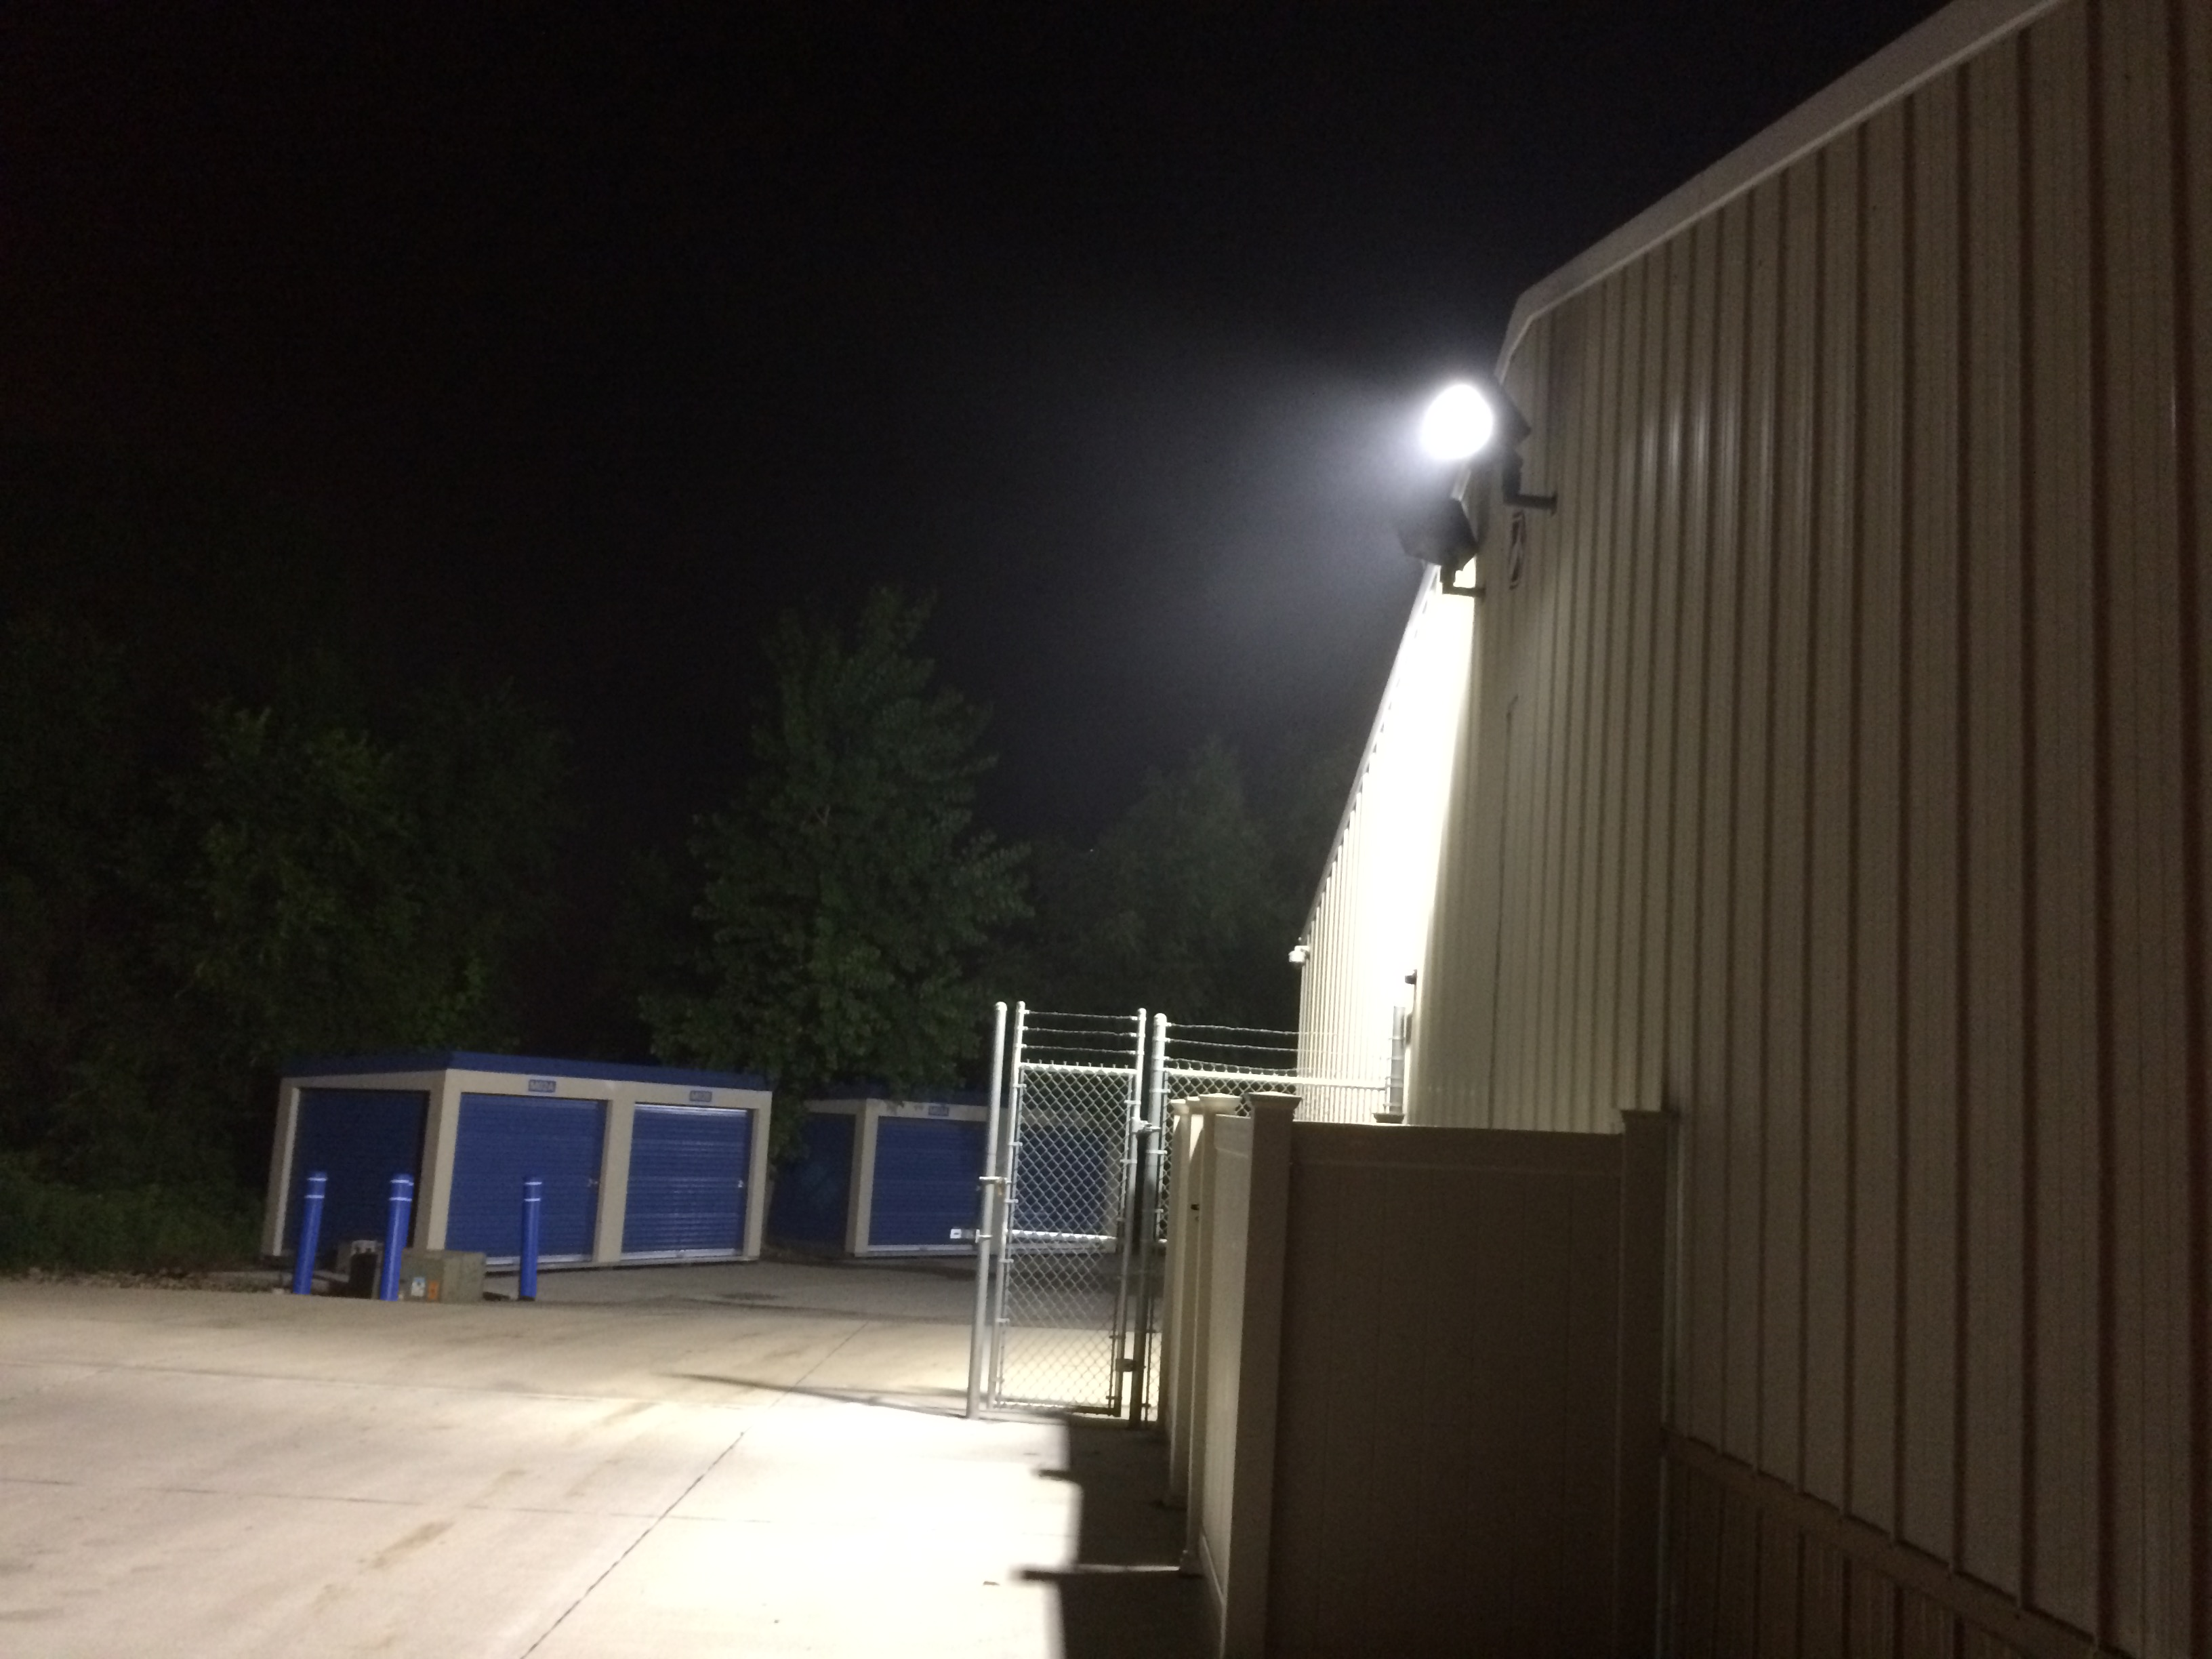 Perimeter Led Flood Lighting 24 Hr Self Storage Davenport Ia